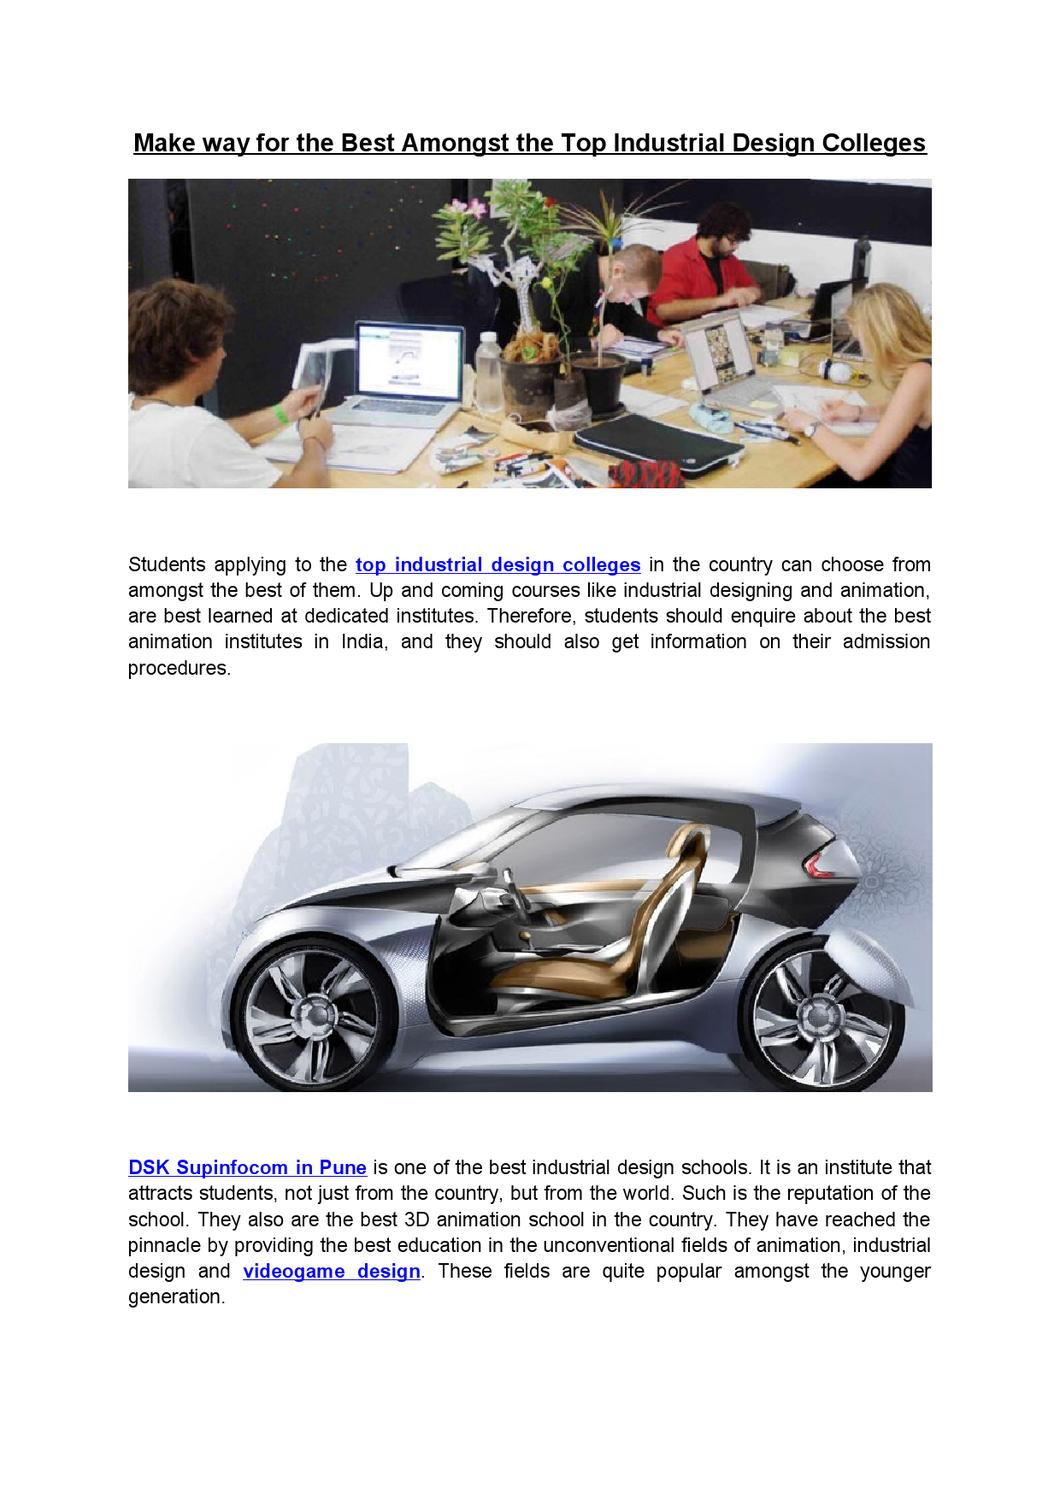 Make Way For The Best Amongst The Top Industrial Design Colleges By Dsk Supinfocom Issuu